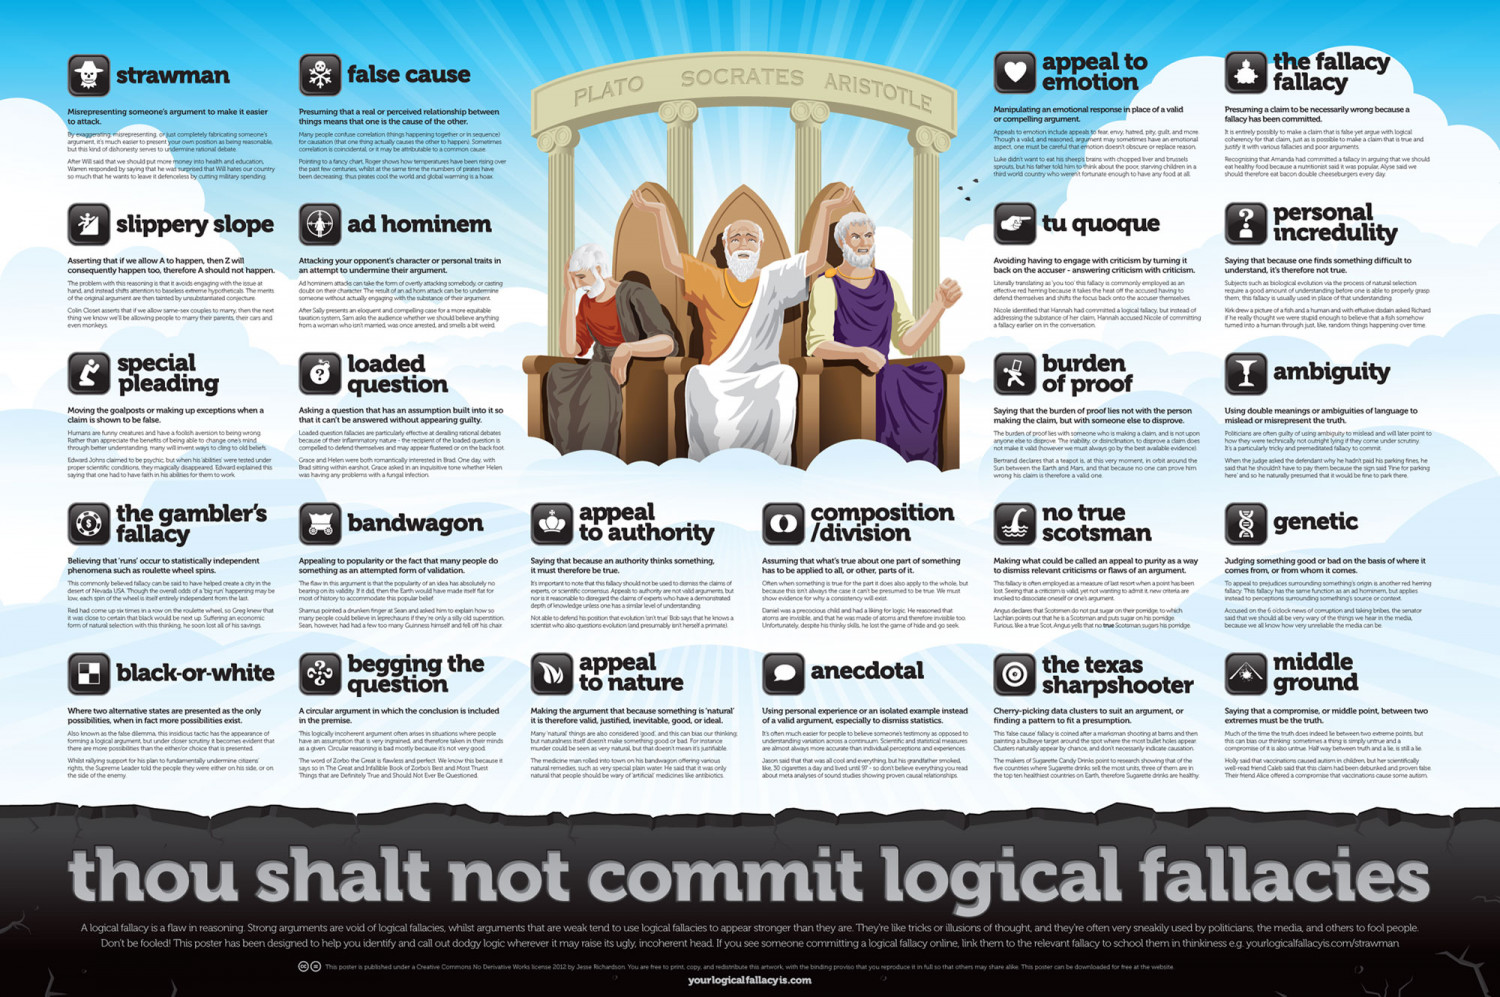 http://thumbnails-visually.netdna-ssl.com/thou-shalt-not-commit-logical-fallacies_52741301b362e_w1500.jpg